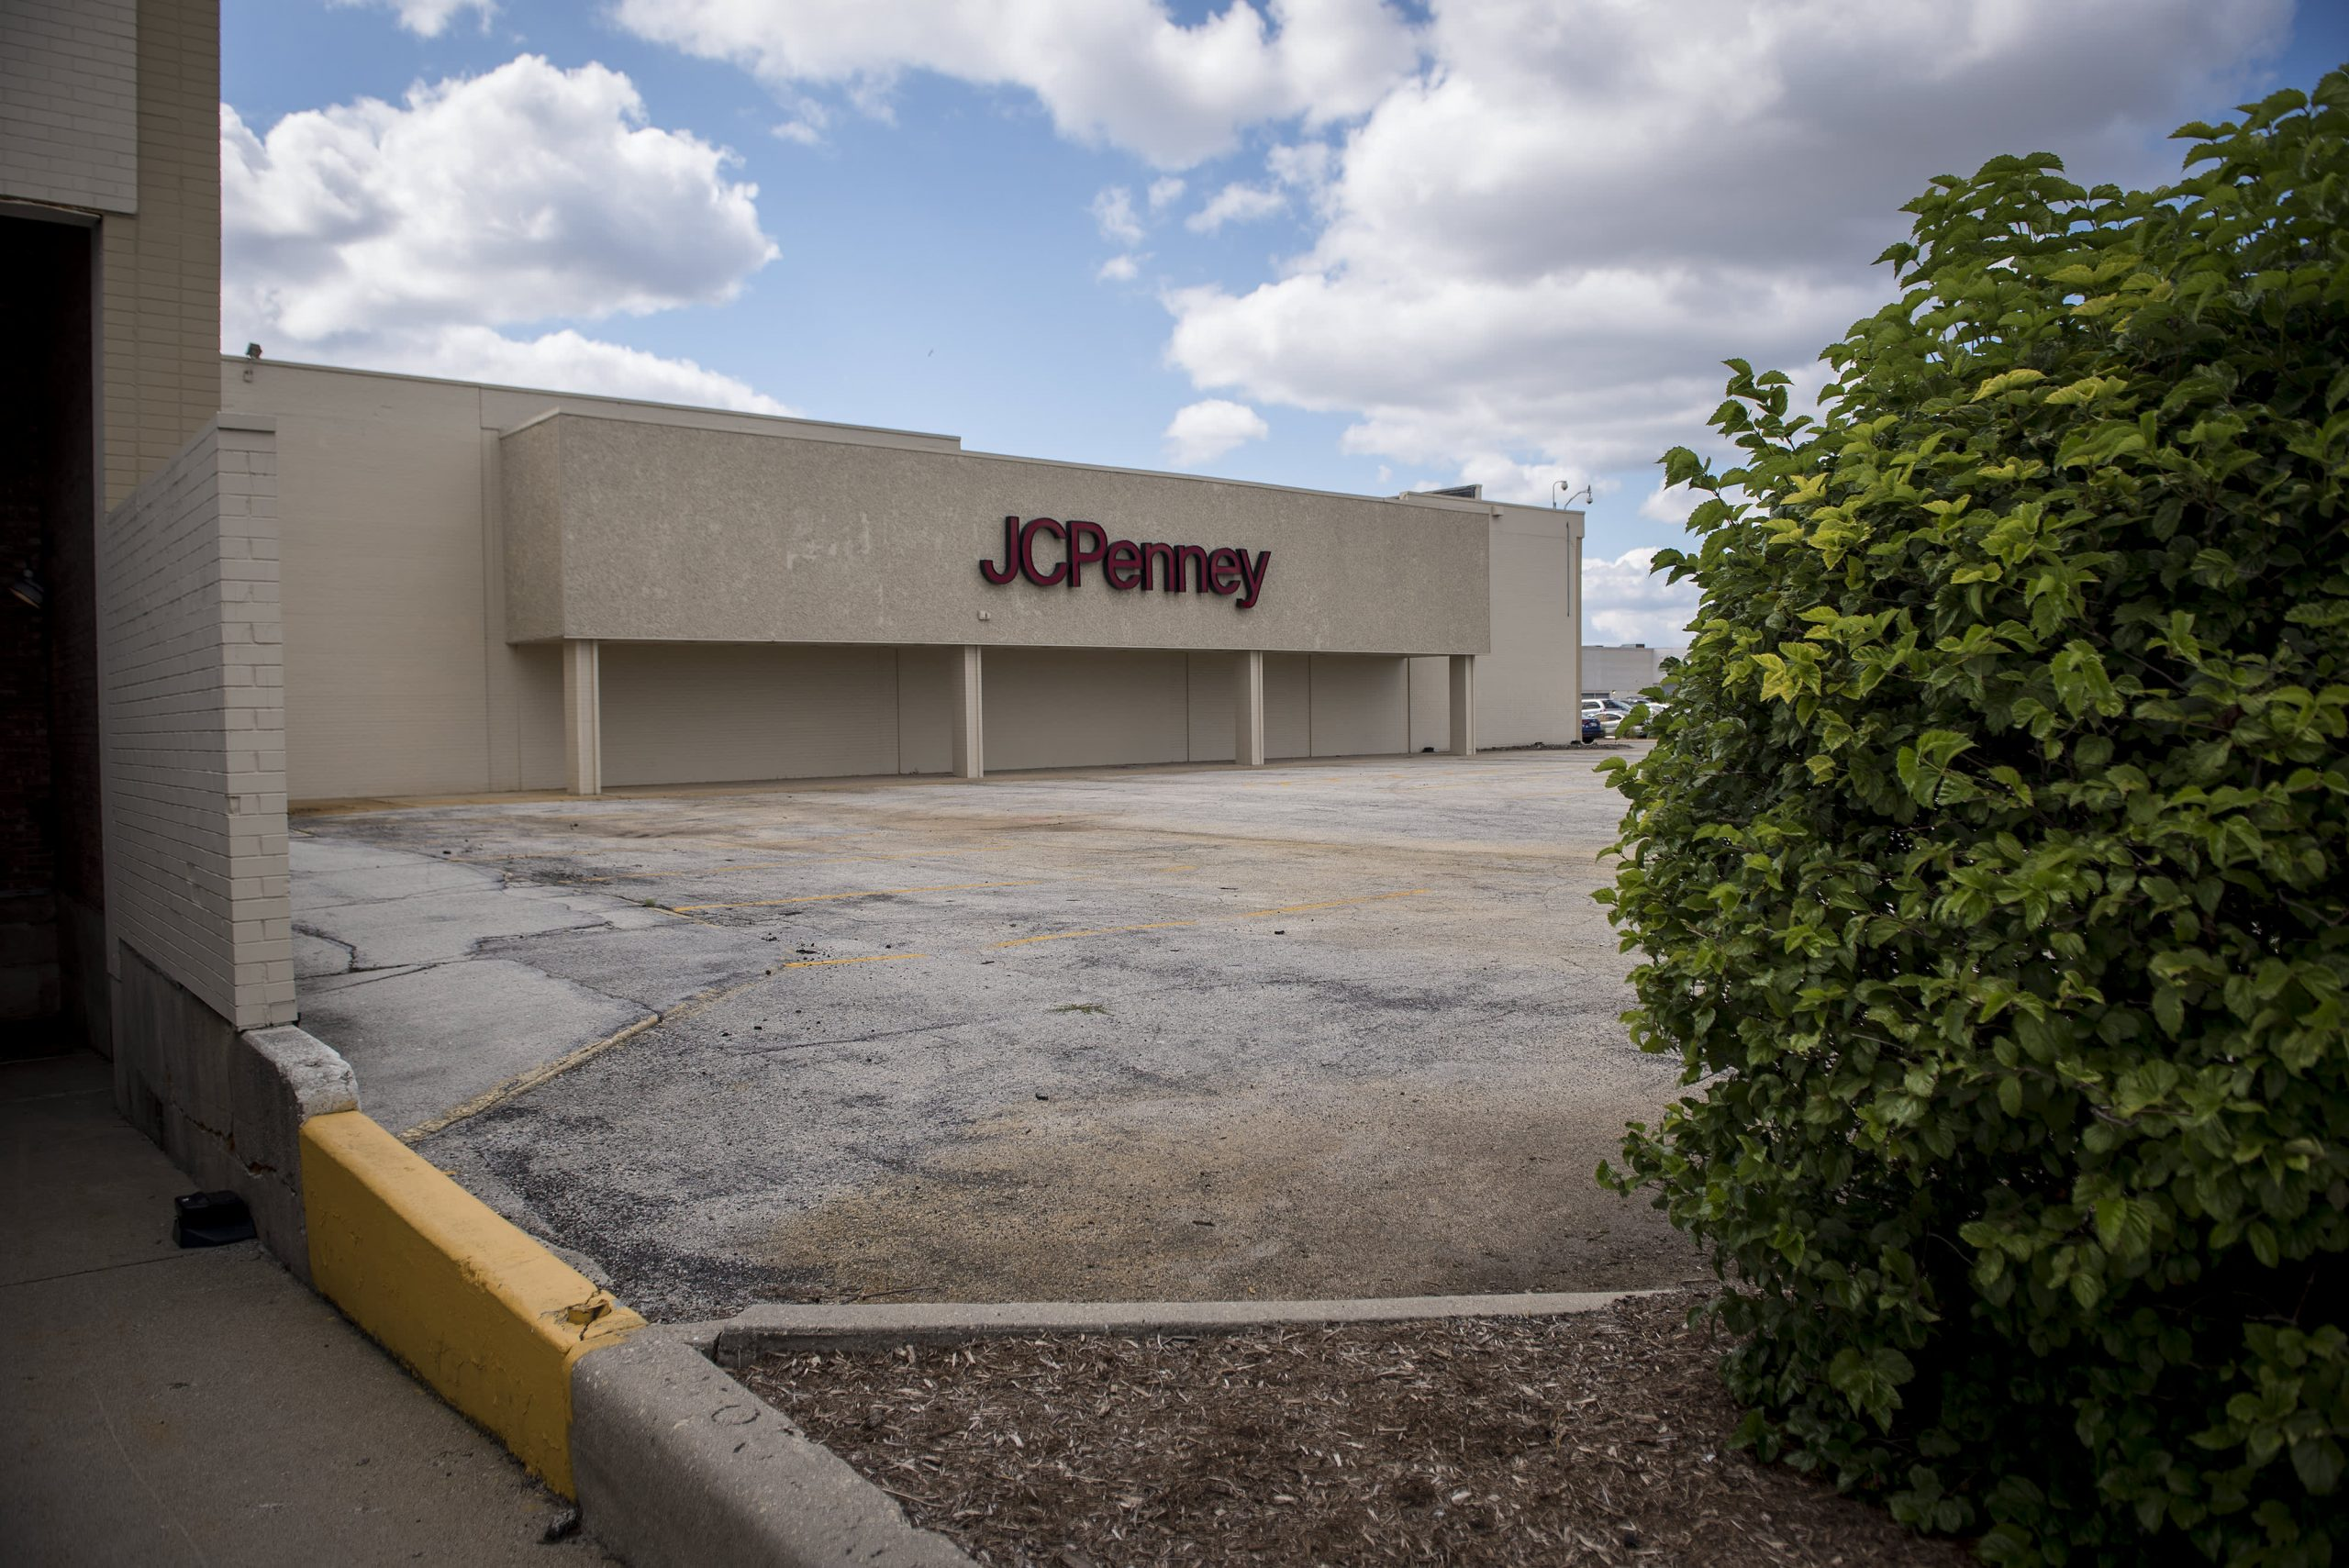 jc-penney-ceo-jill-soltau-to-leave-retailer-after-emerging-from-bankruptcy